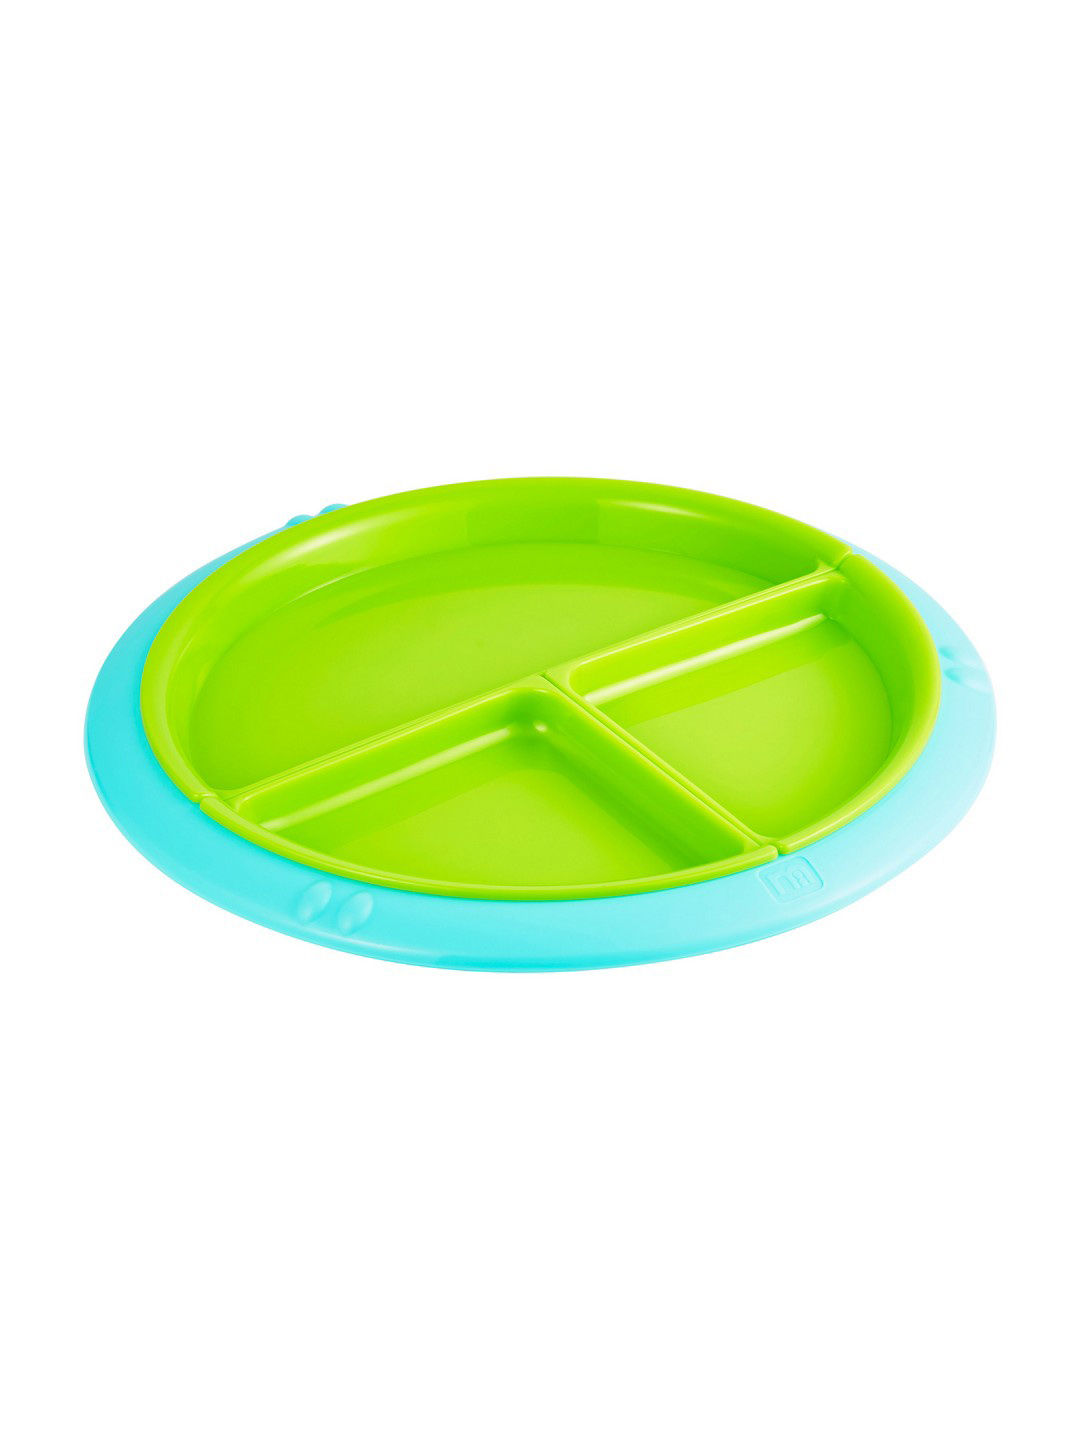 Mothercare | Removable Section Divider Plate - Blue